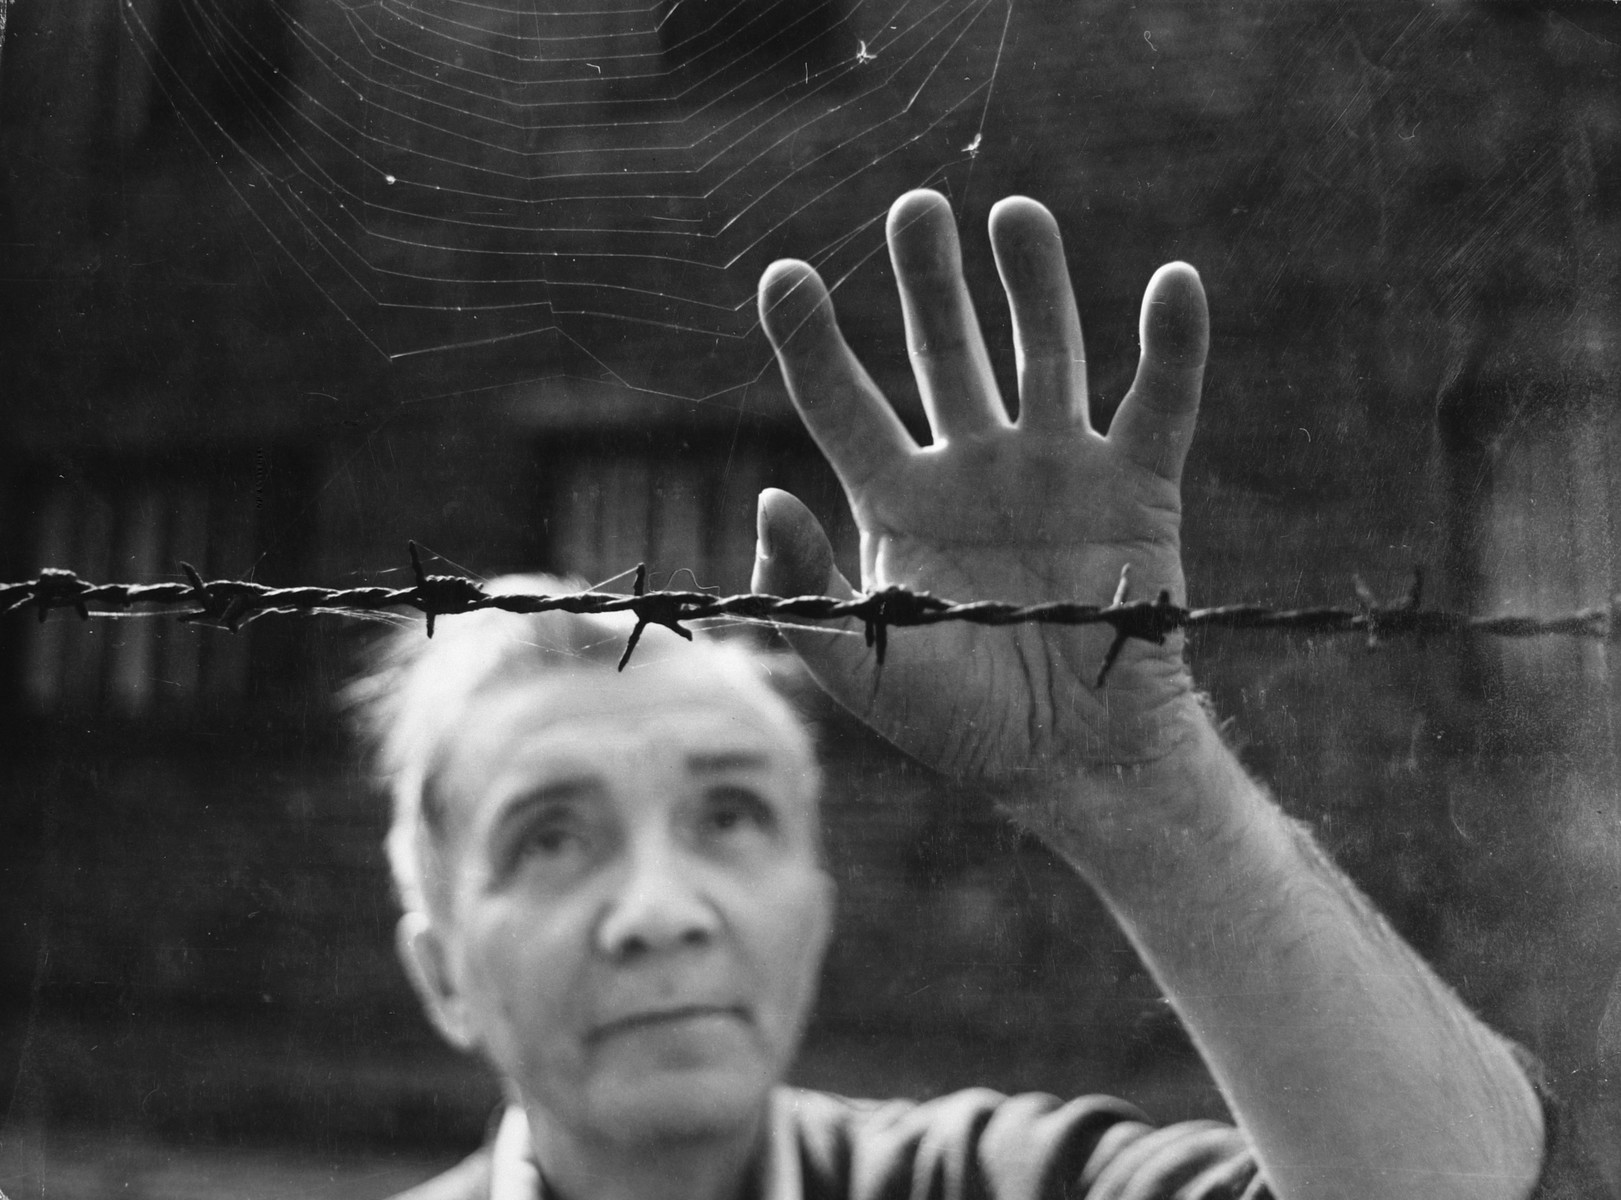 Postwar portrait of Aleksander Kulisiewicz, Polish composer and concentration camp survivor, standing in front of a barbed wire fence.